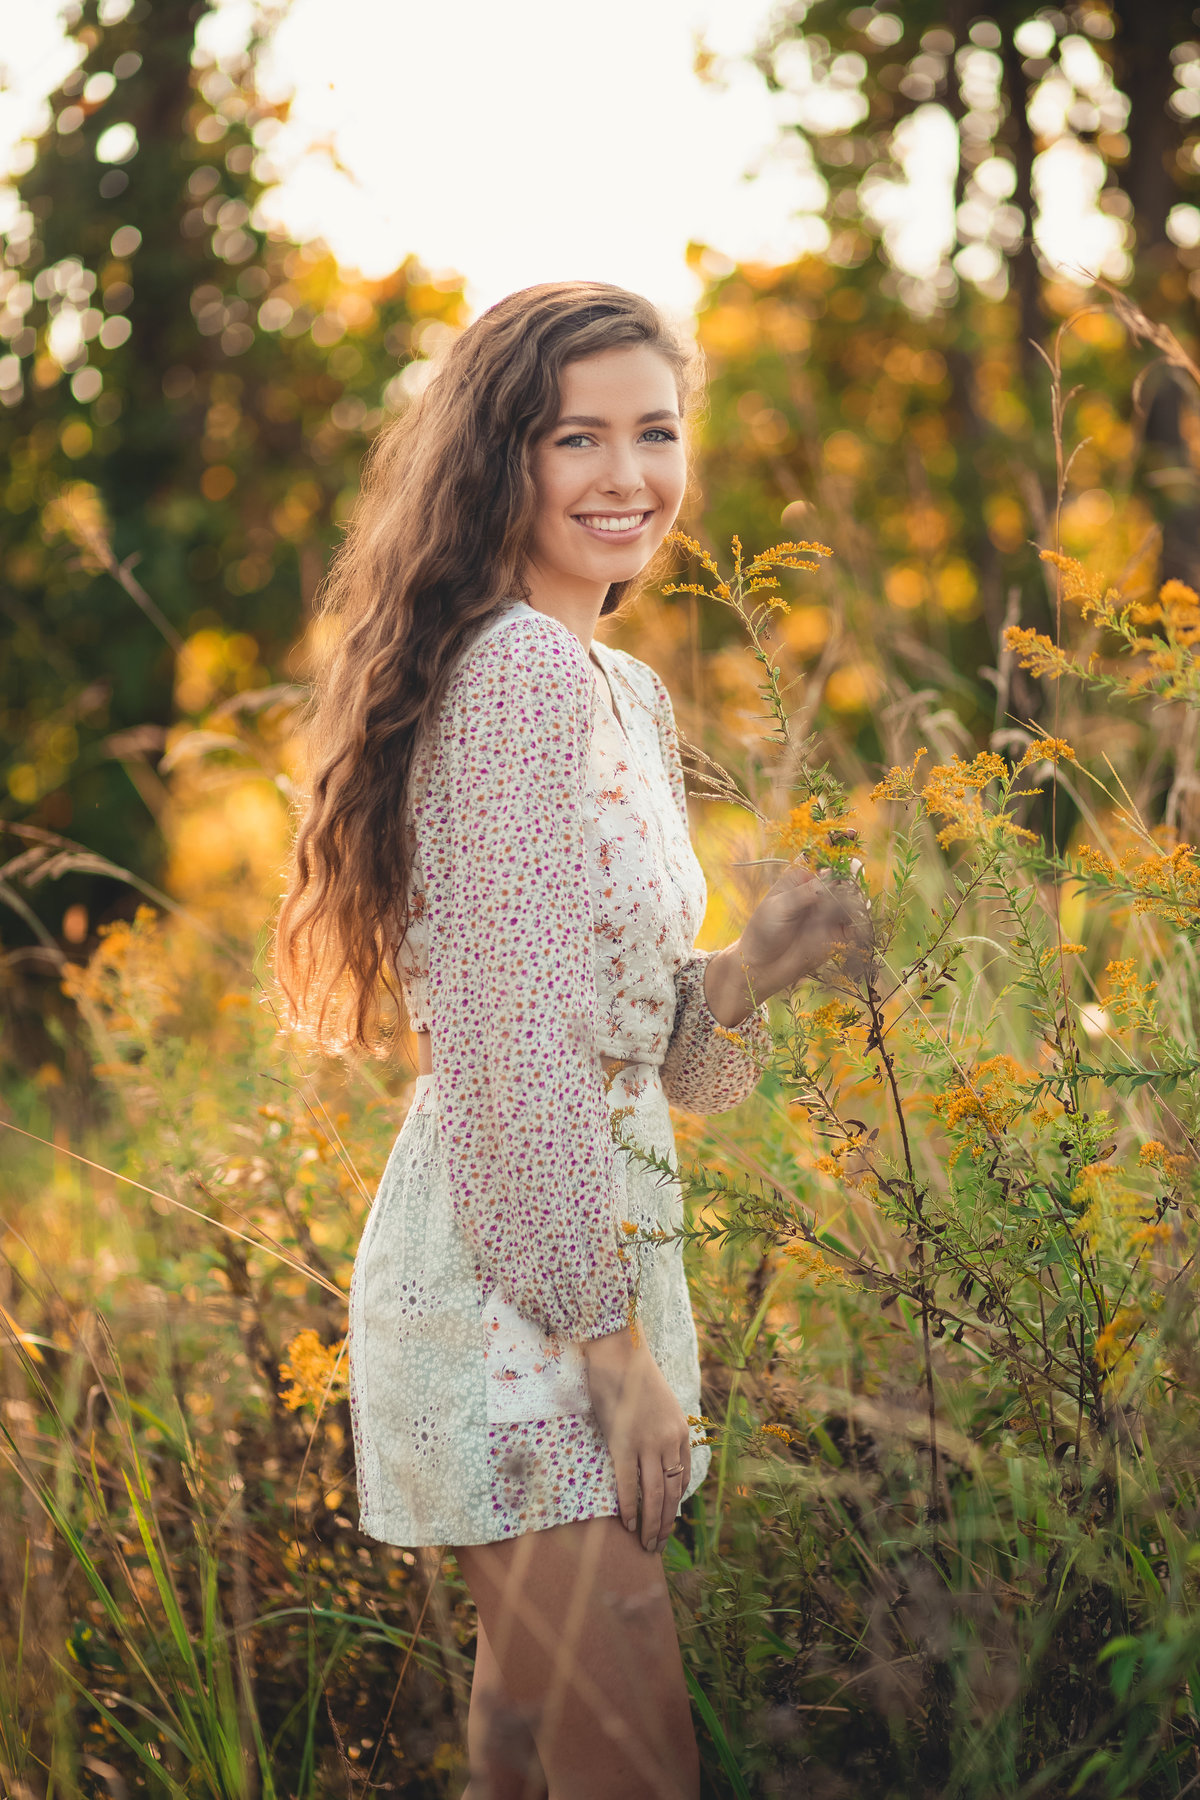 7958-North-Carolina-Senior-Portrait-Photographer-Lindsay-Corrigan-Tracey-2020 copy